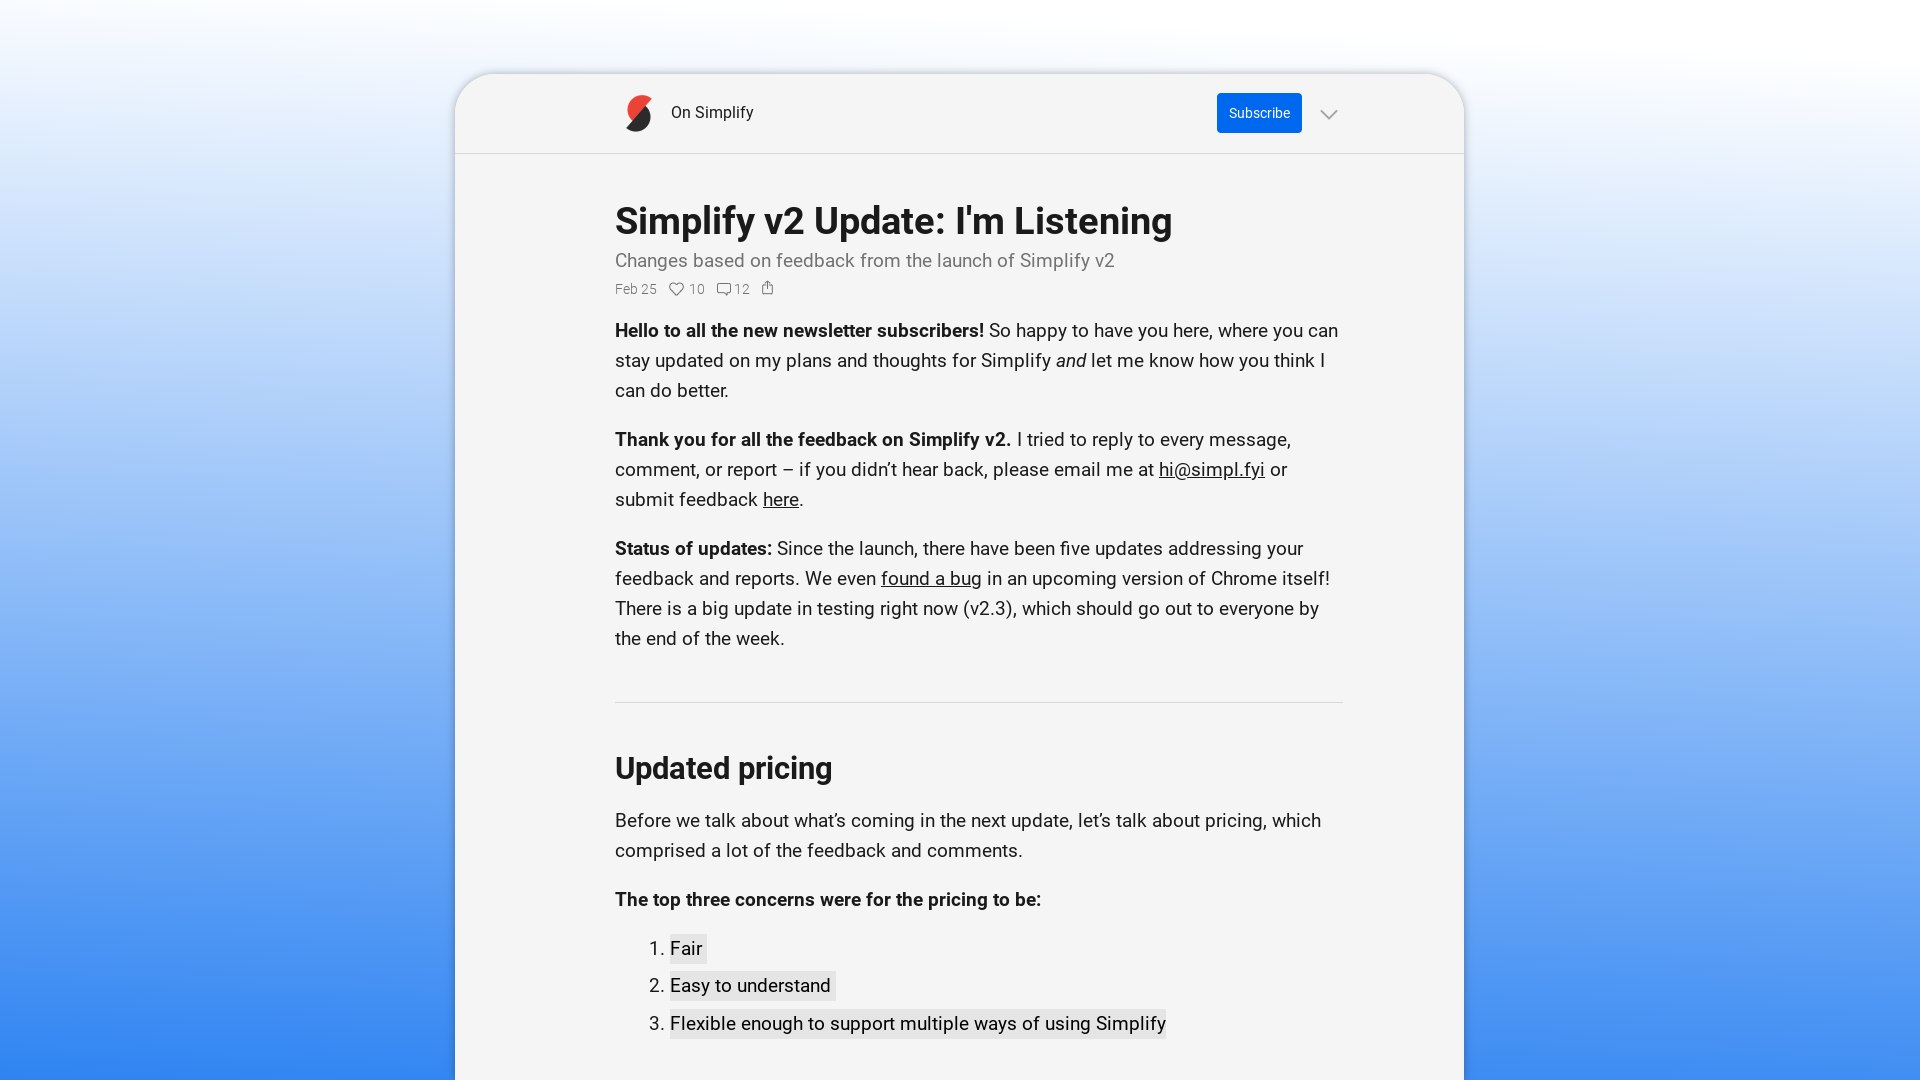 After feedback, Simplify Gmail v2 has a simple pricing structure that looks great